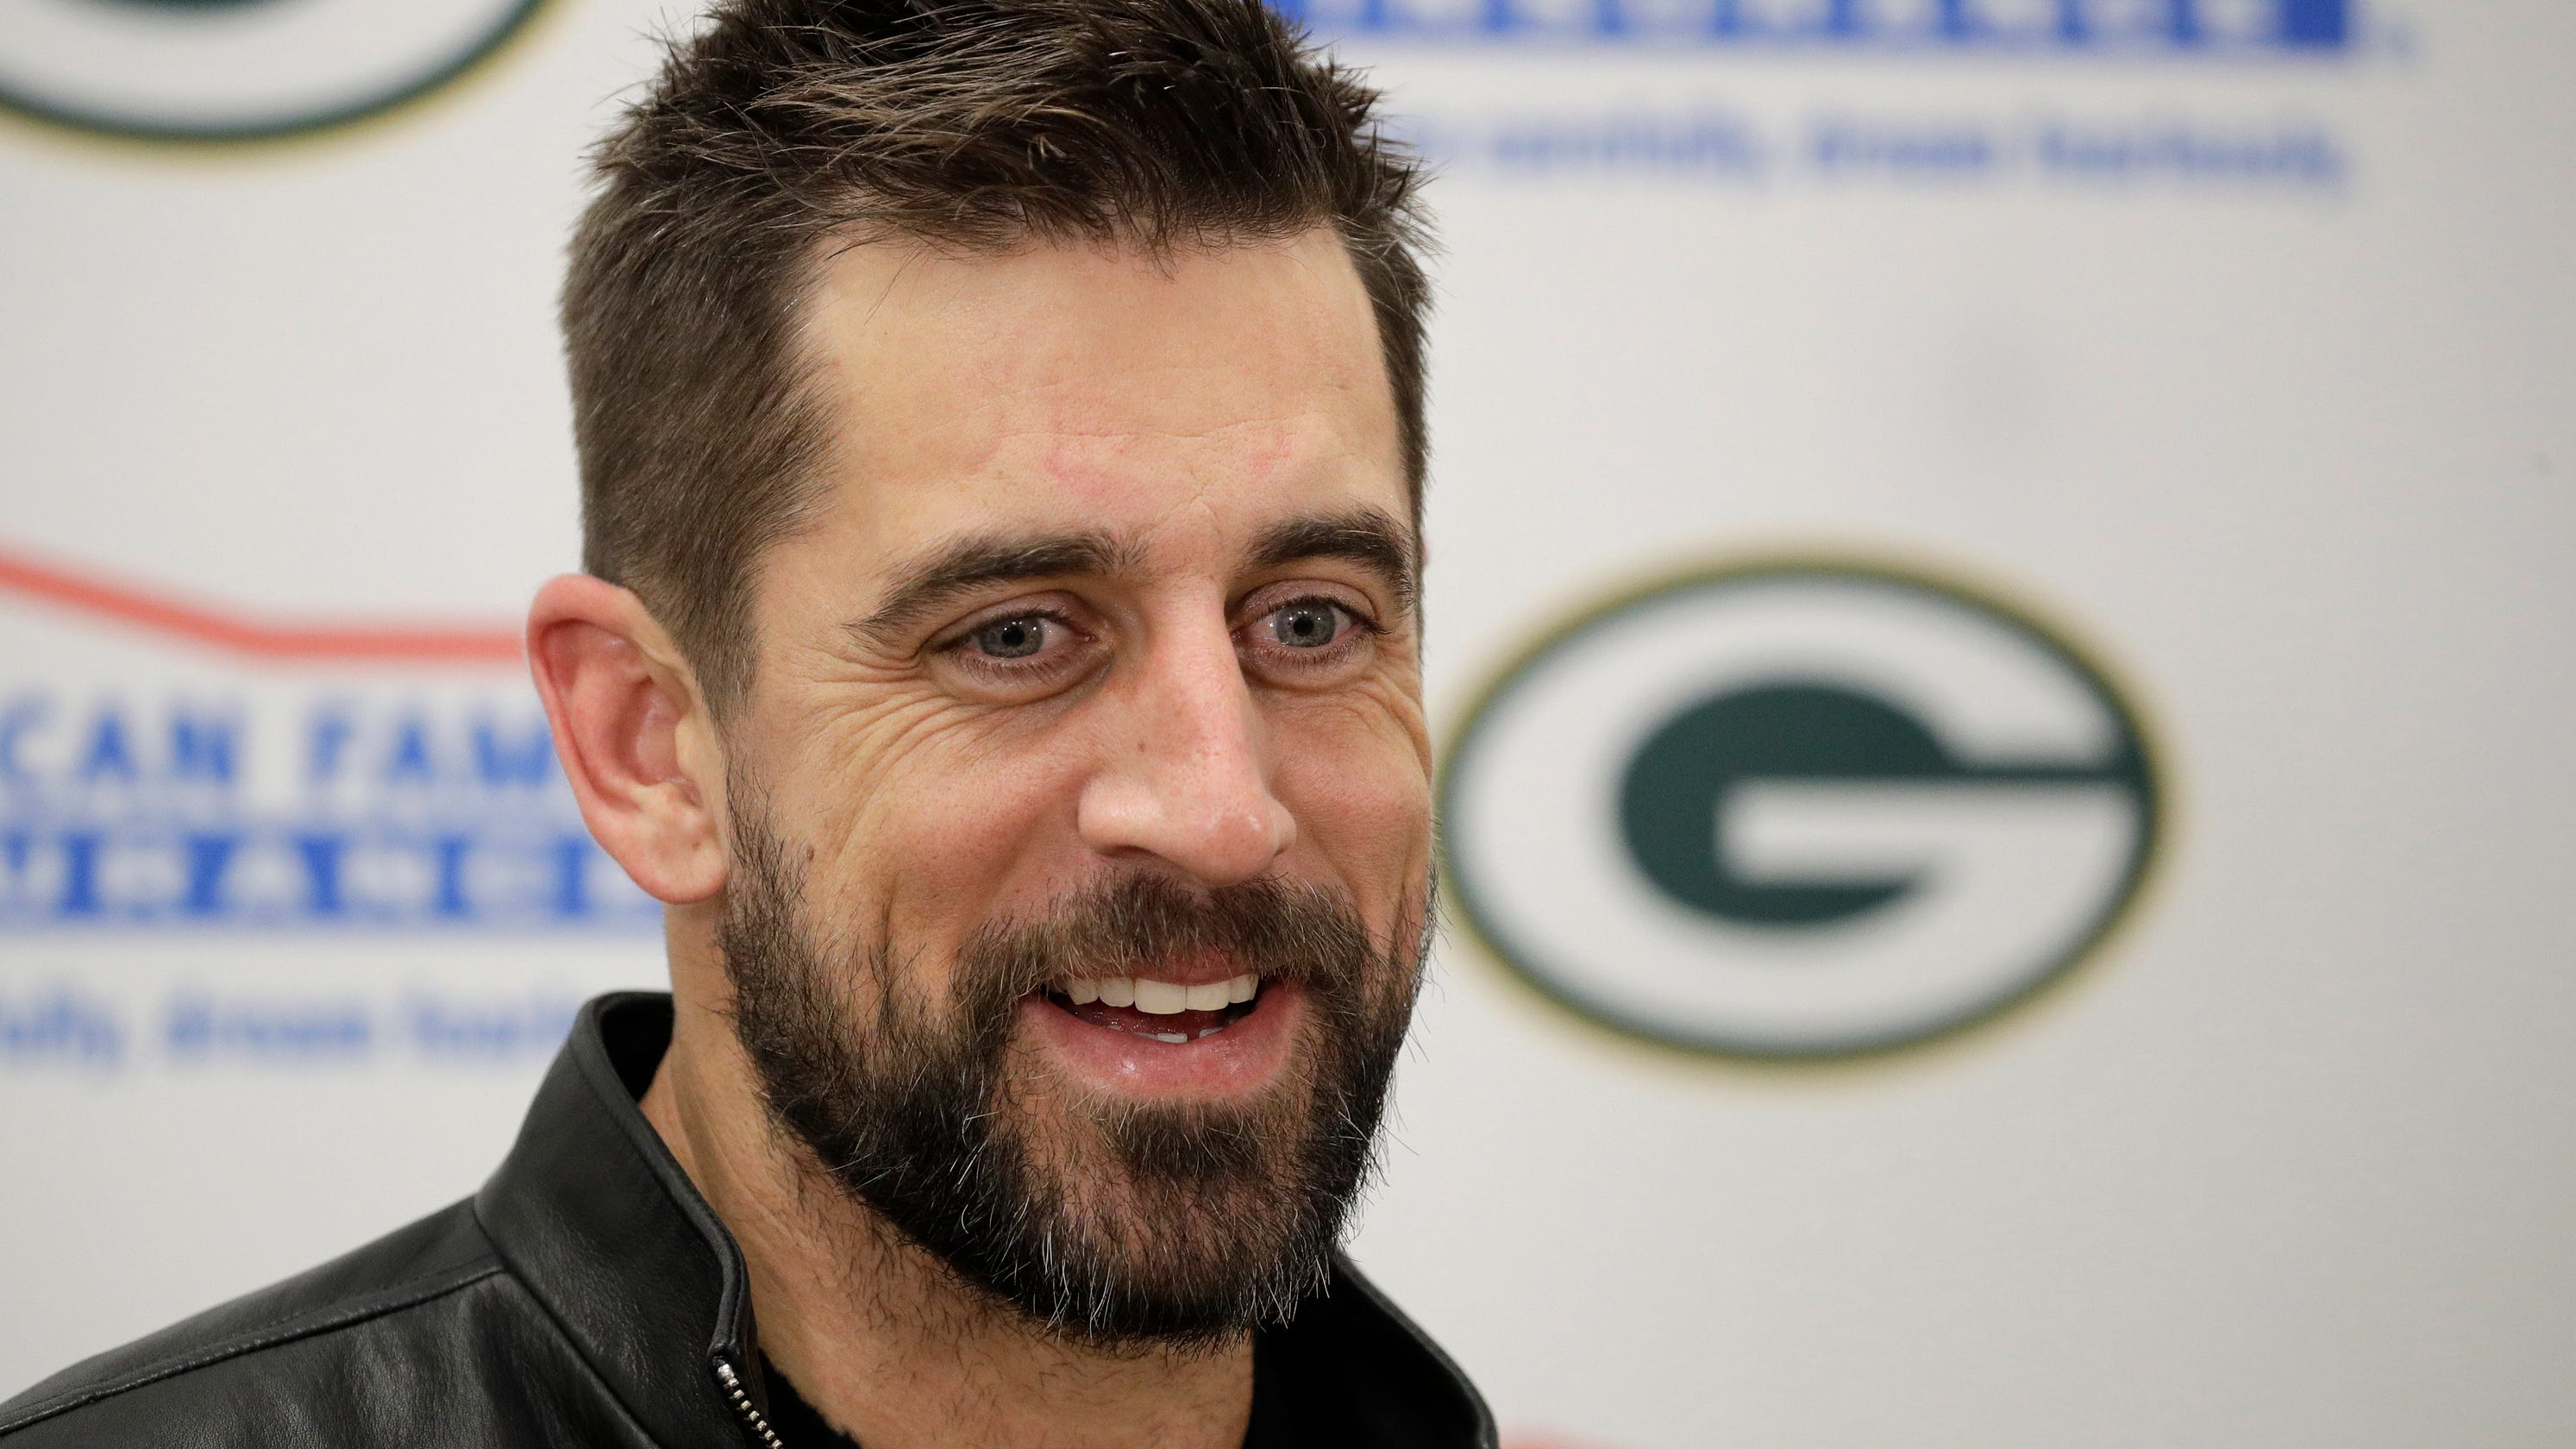 'Purple Doritos,' Scorpions karaoke, Jack Handey: 10 fun things we learned about Aaron Rodgers from '10 Questions' podcast